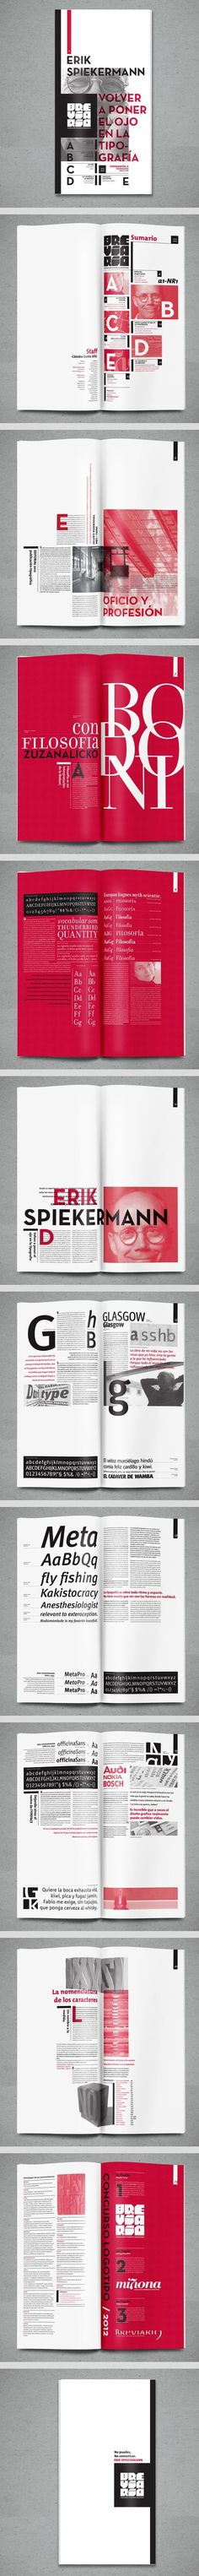 Media as art | print(book, magazine, newspaper)+typography+editorial+layout+design